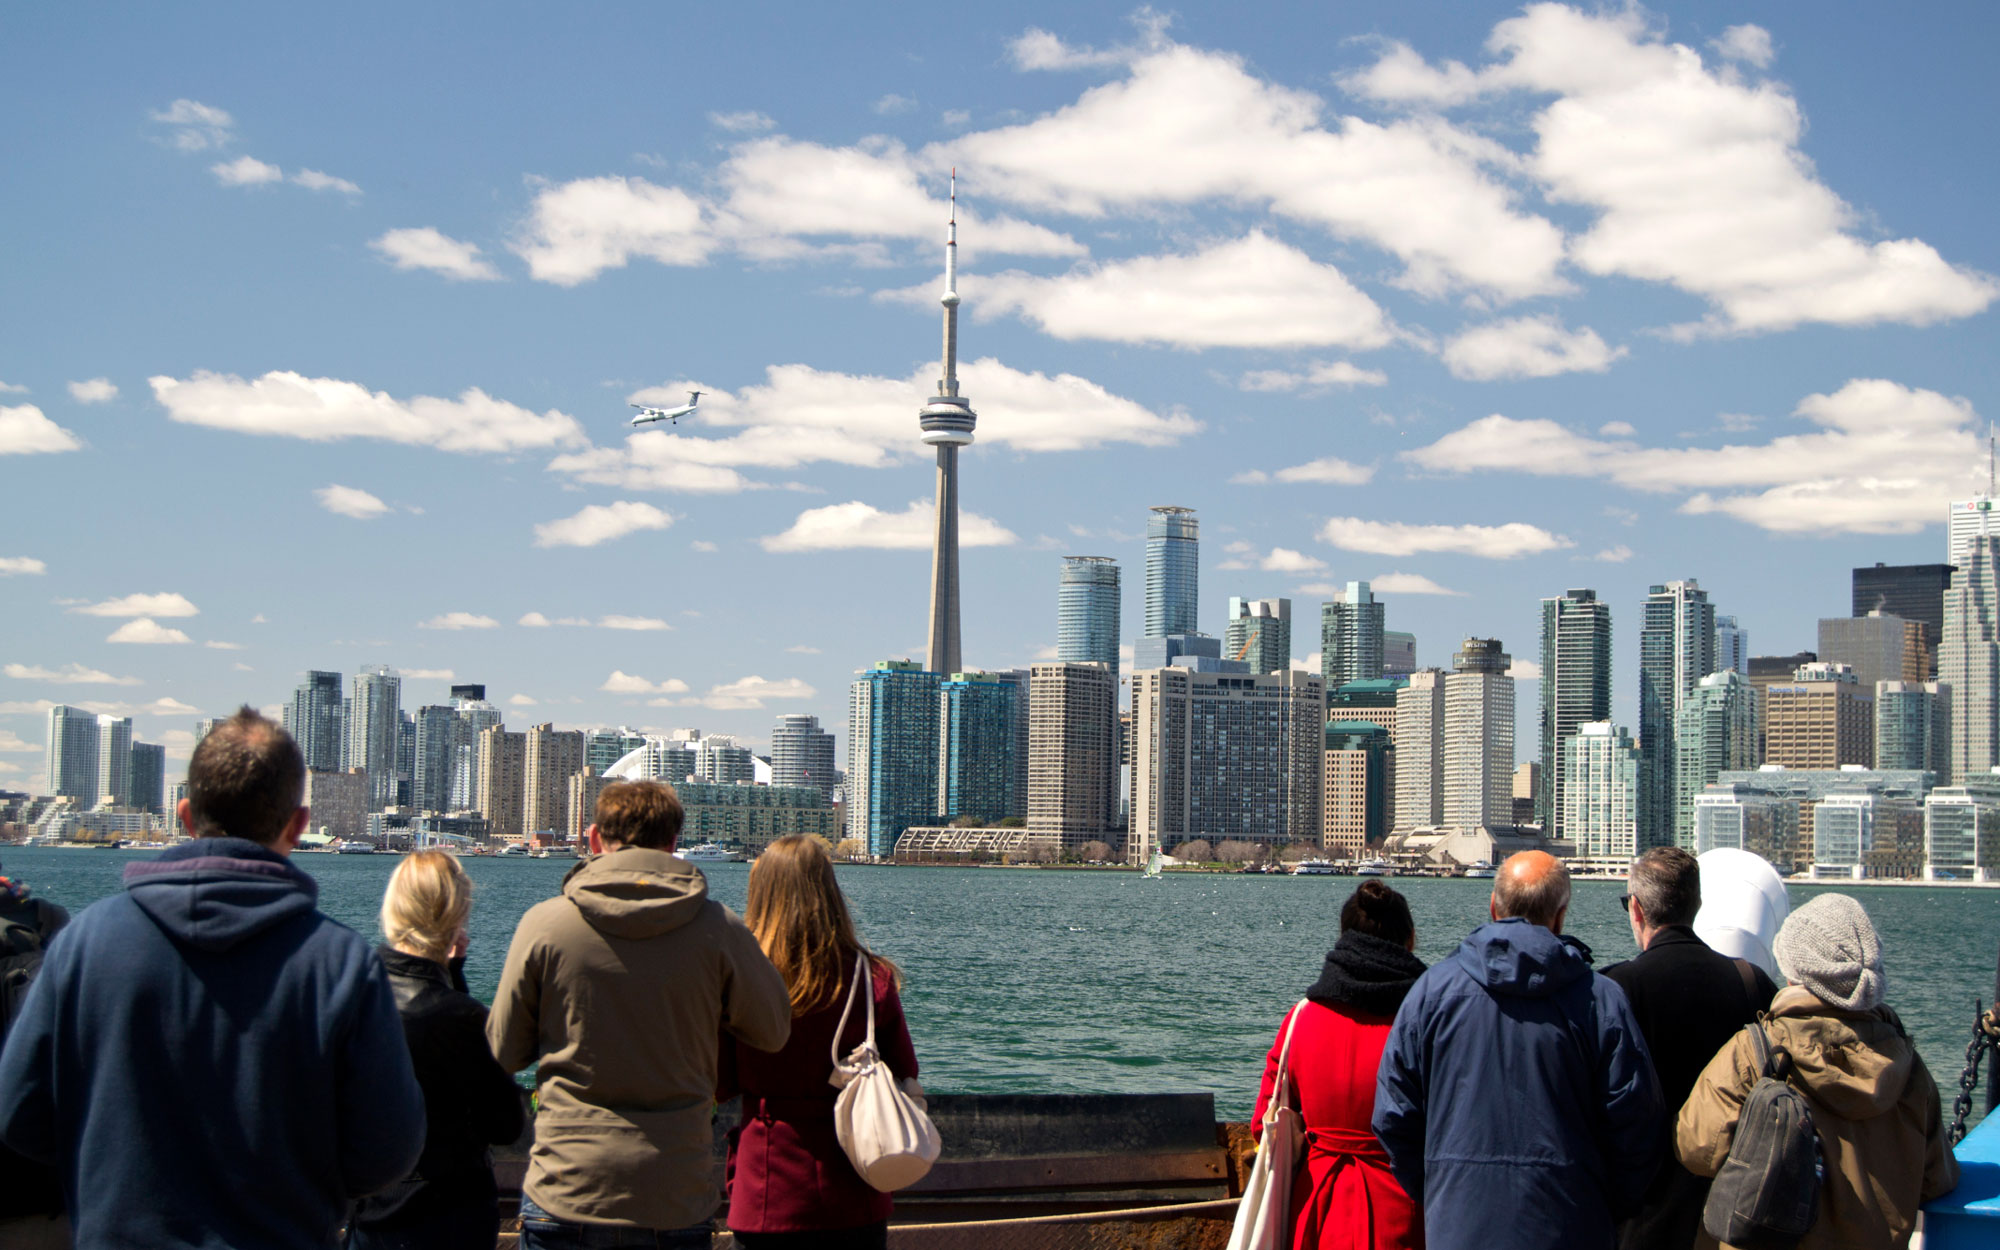 Toronto's Most Underrated Attractions